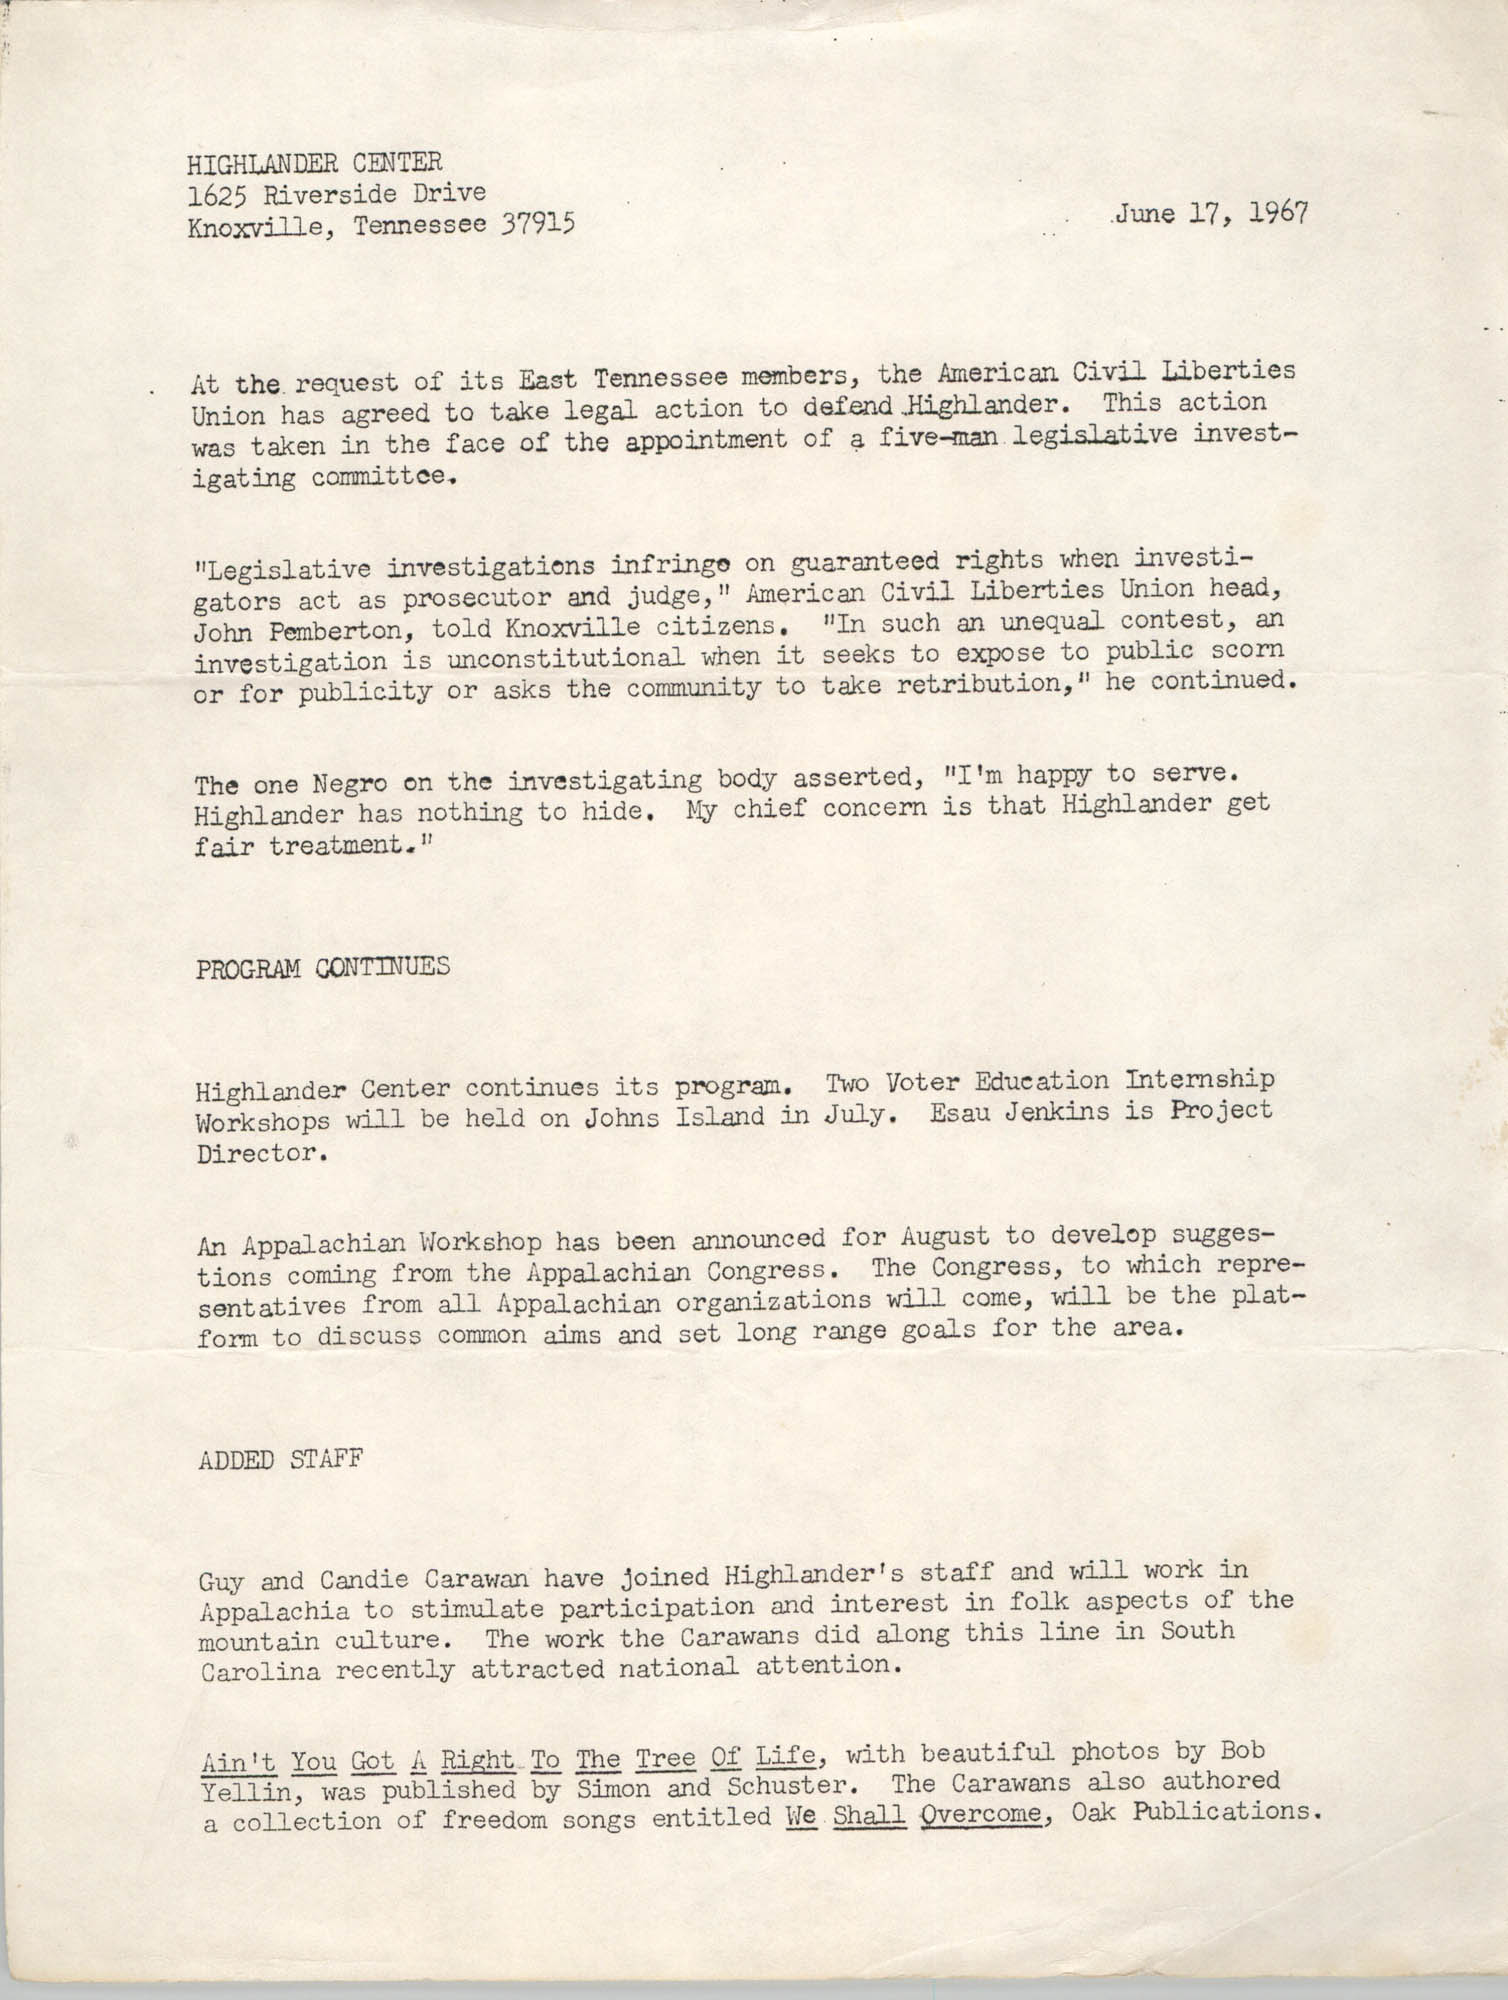 Press Release from Highlander Center, June 17, 1967